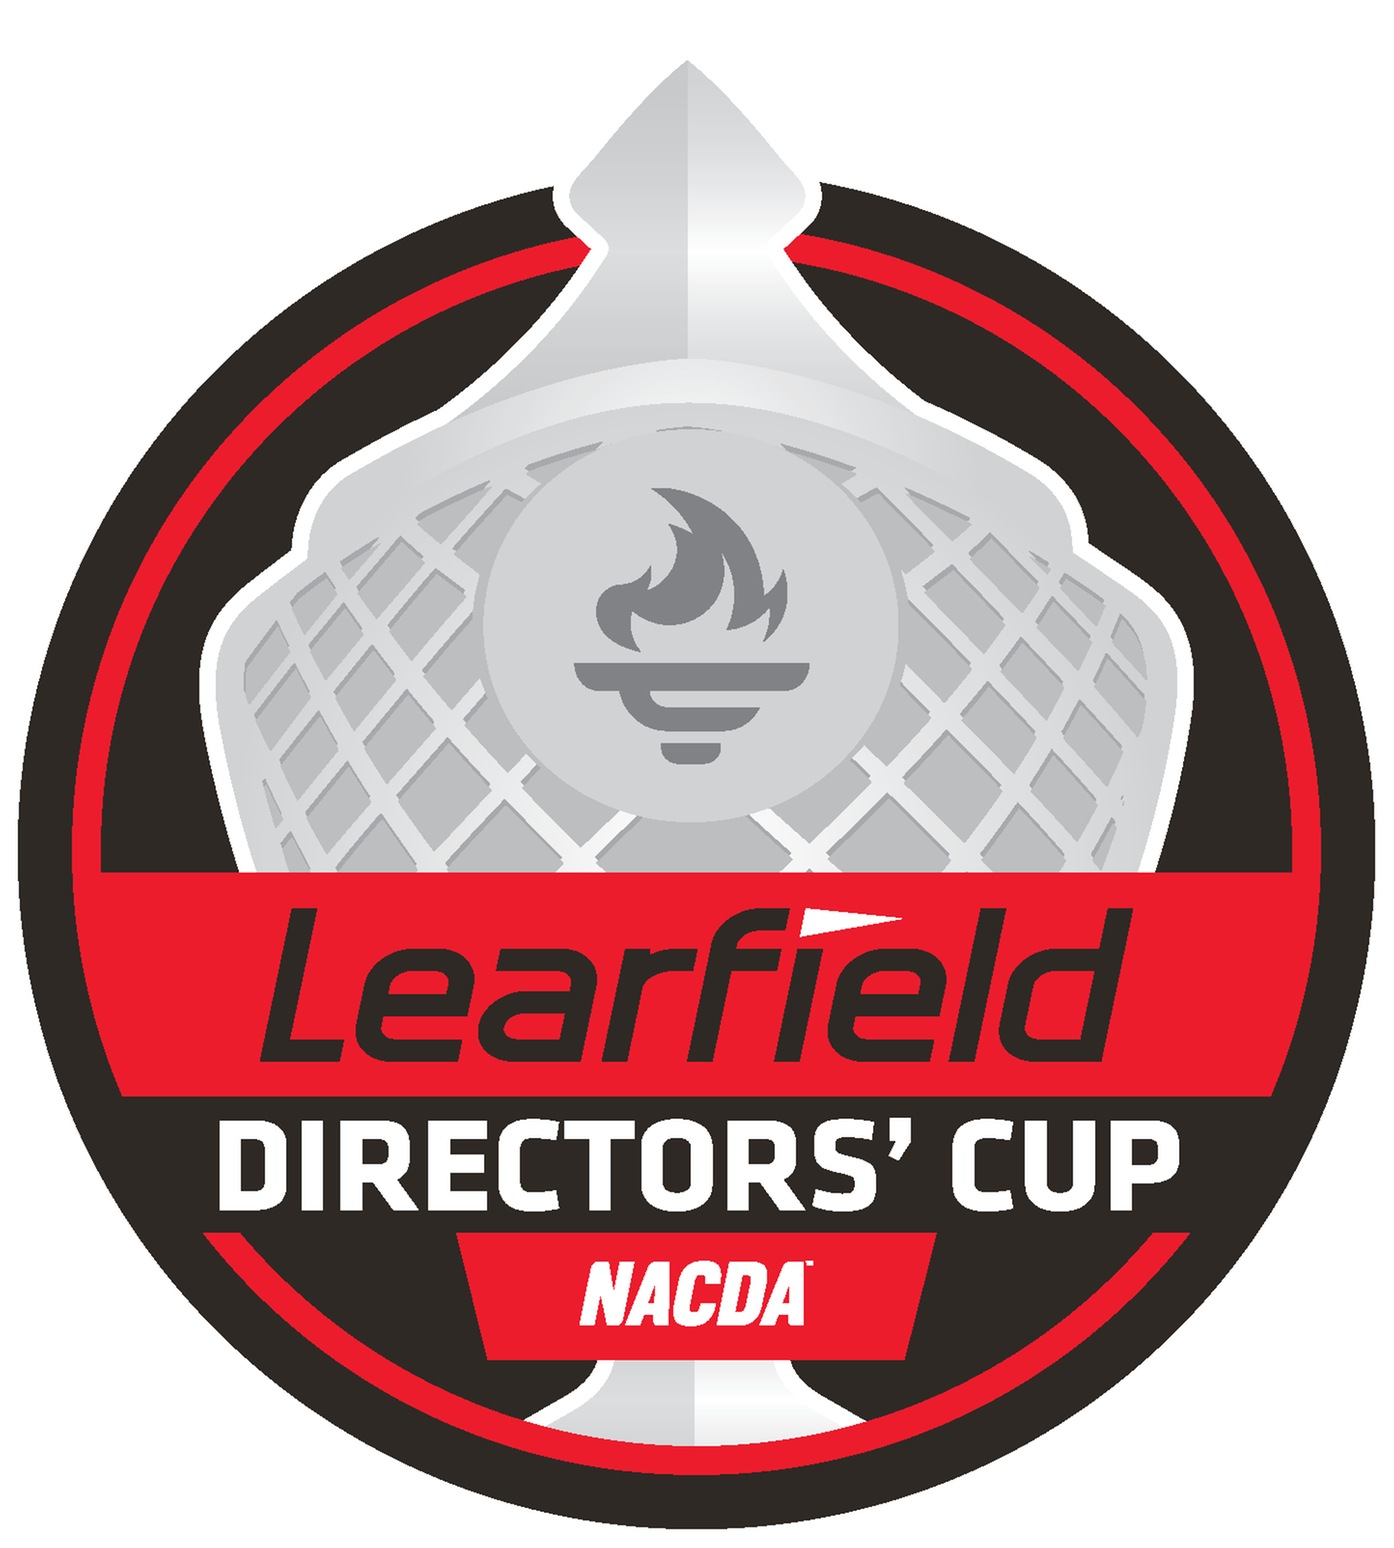 Learfield Directors Cup black and red logo